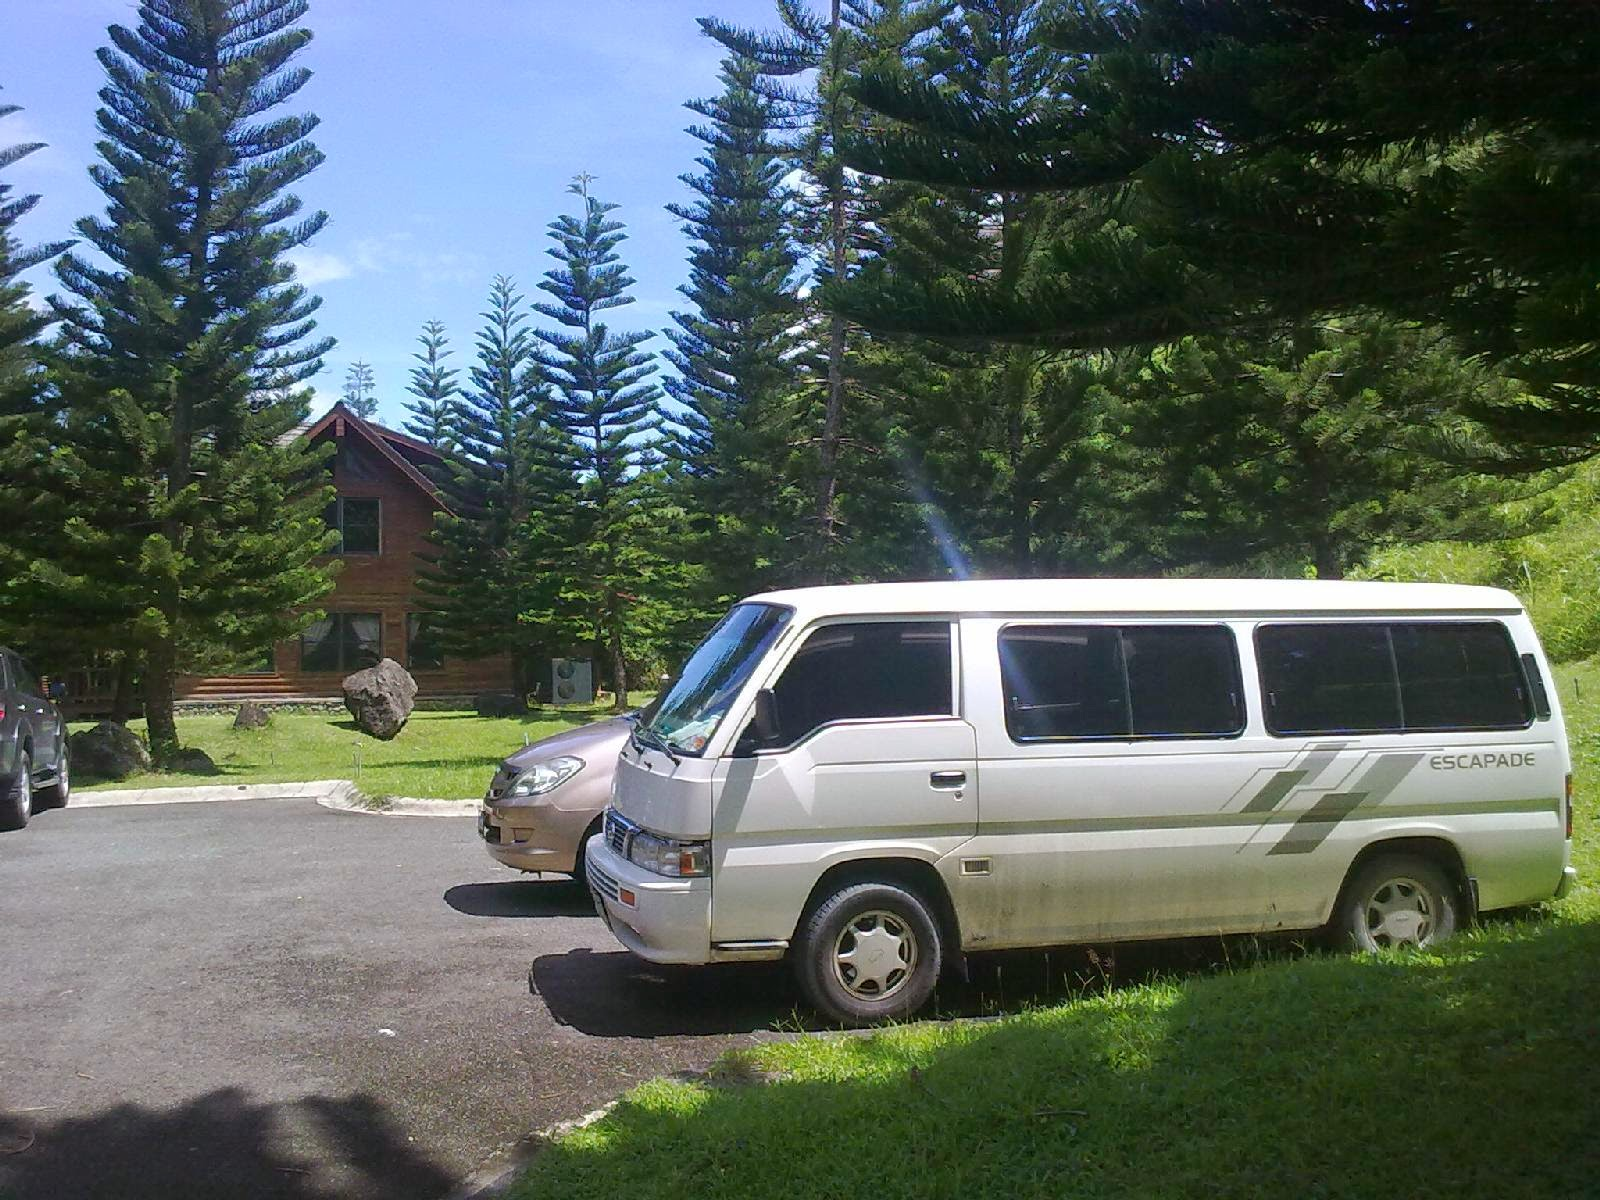 van for rent philippines abroad email us amtrivanrental gmail com